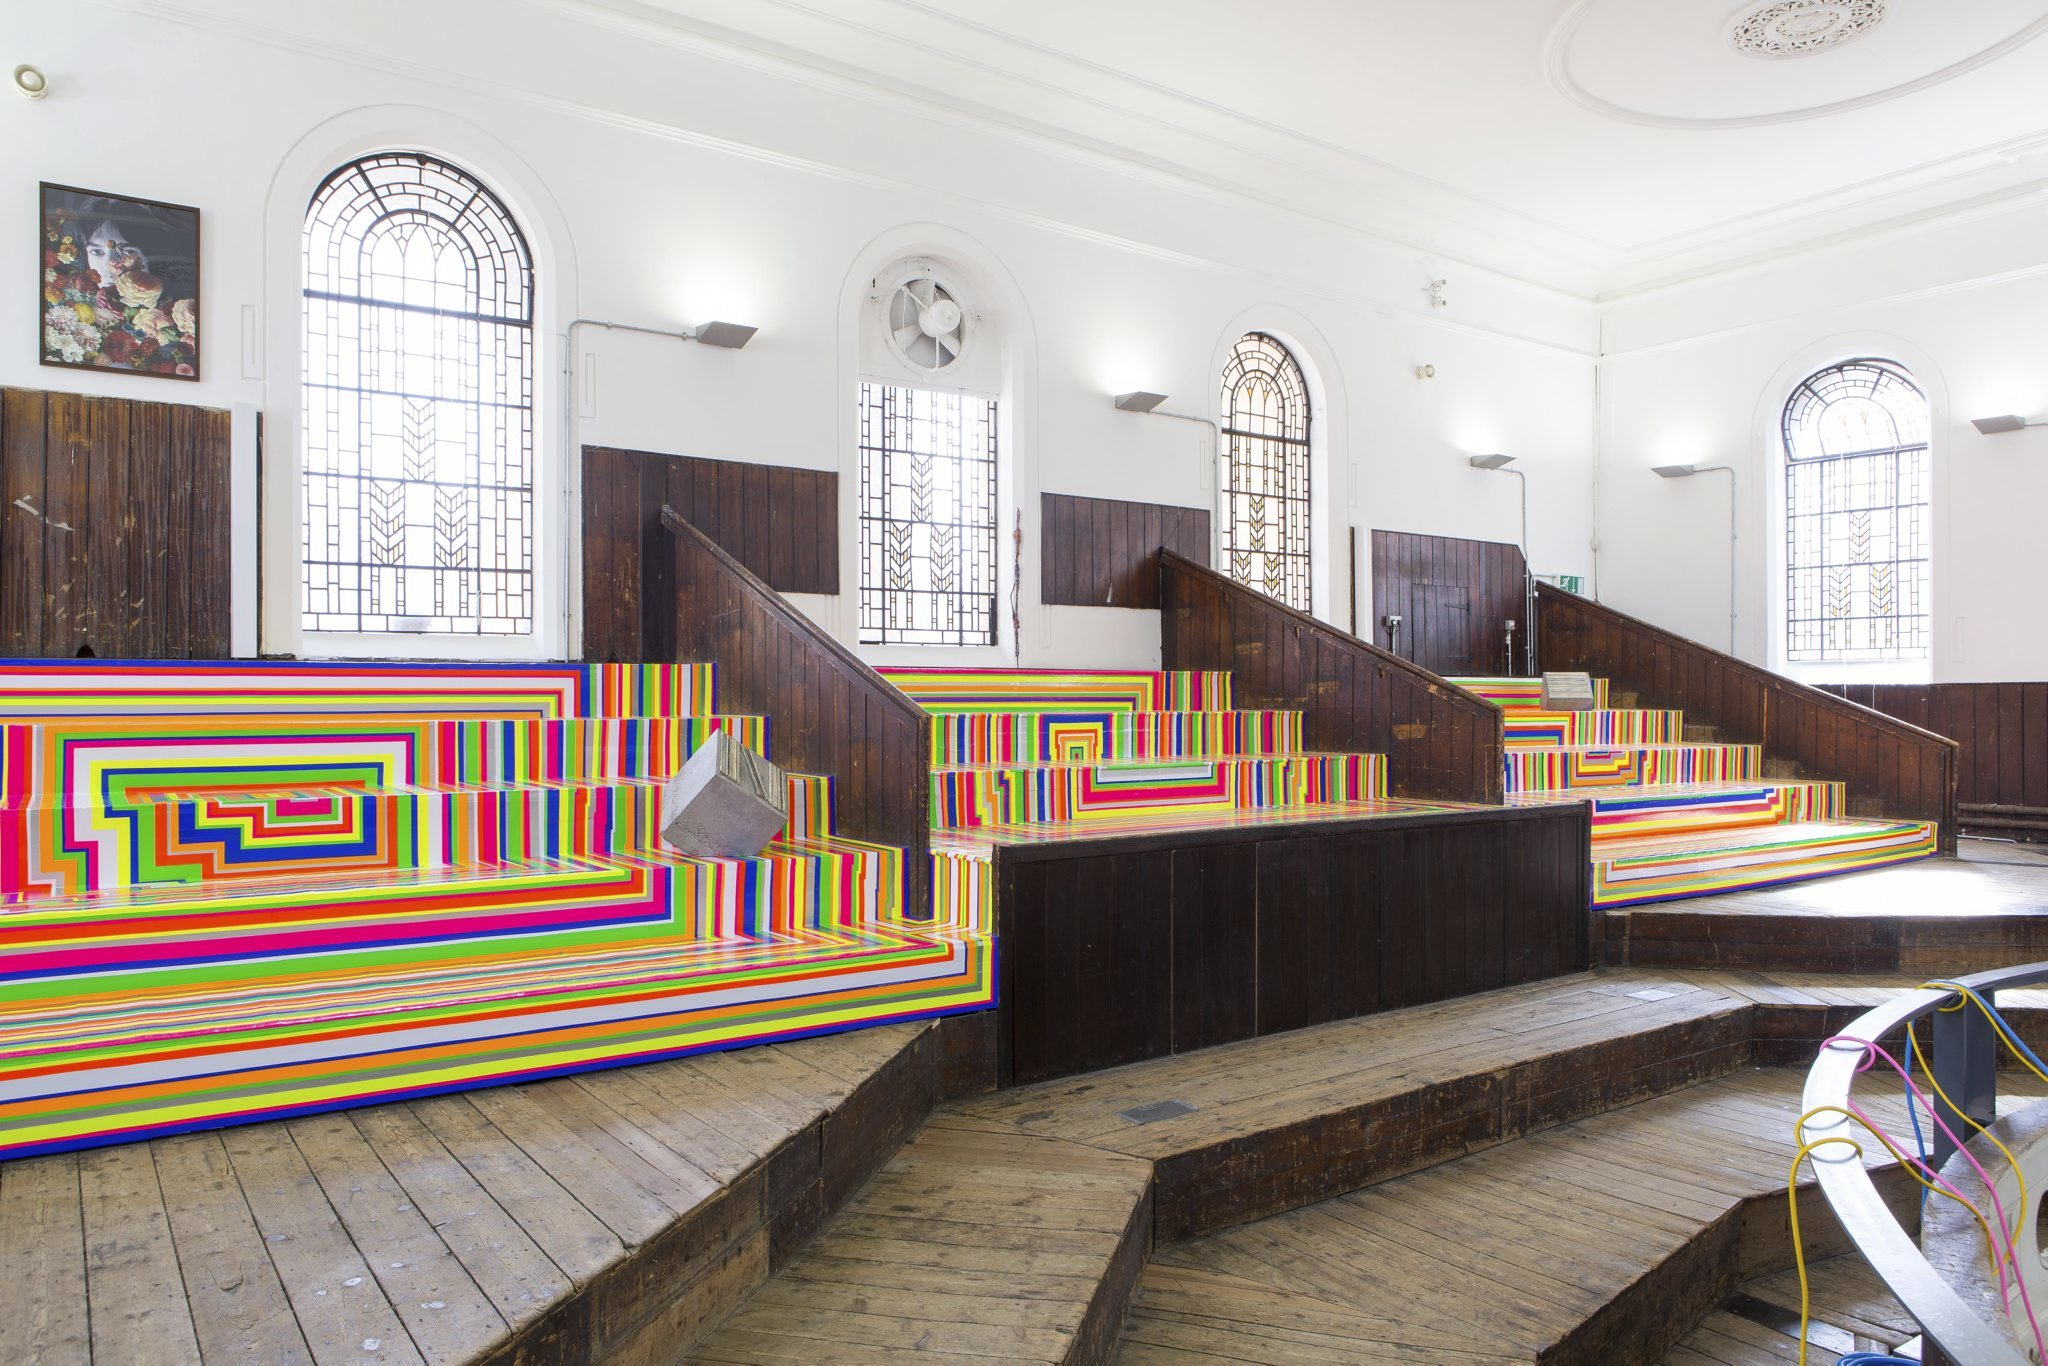 Zabludowicz Collection: 20 Years